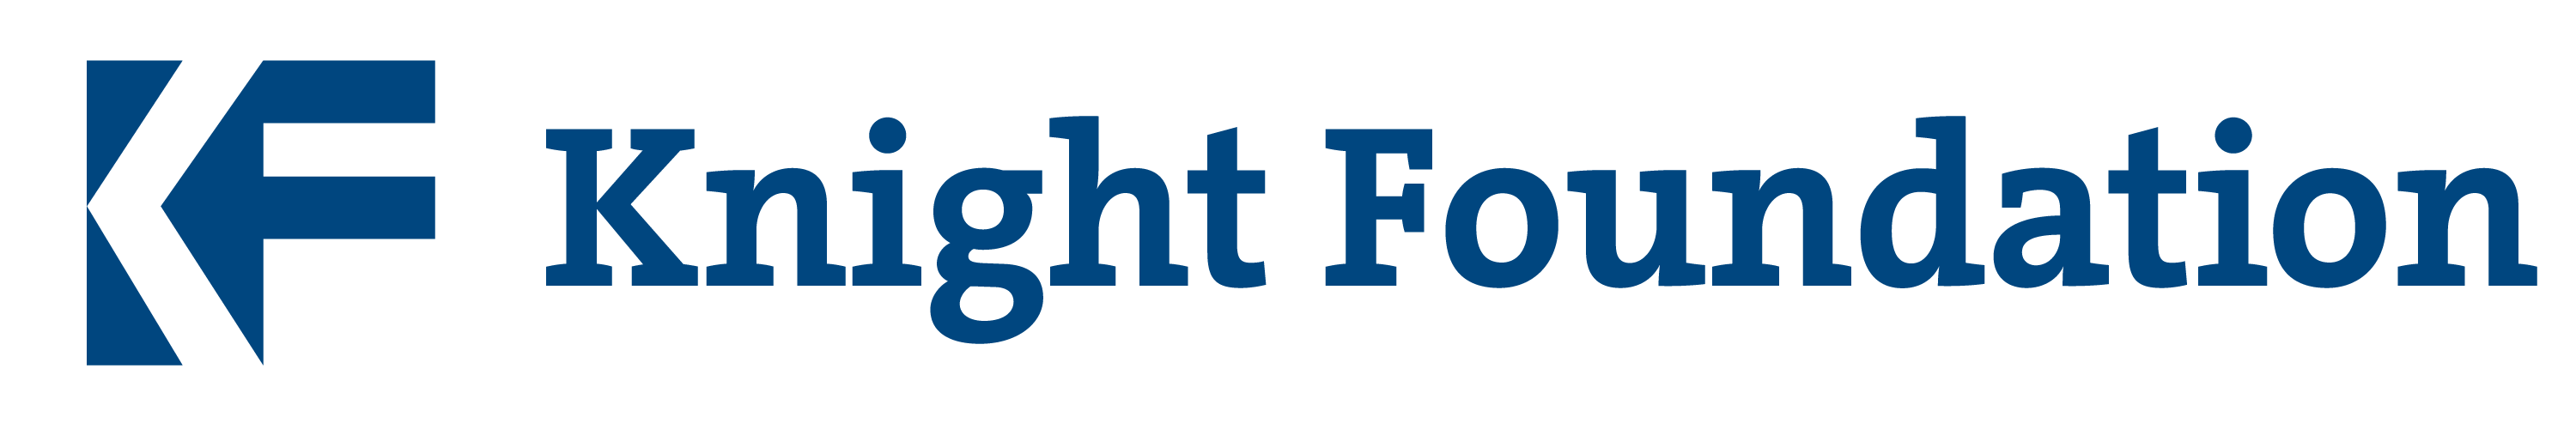 Image result for knight foundation logo